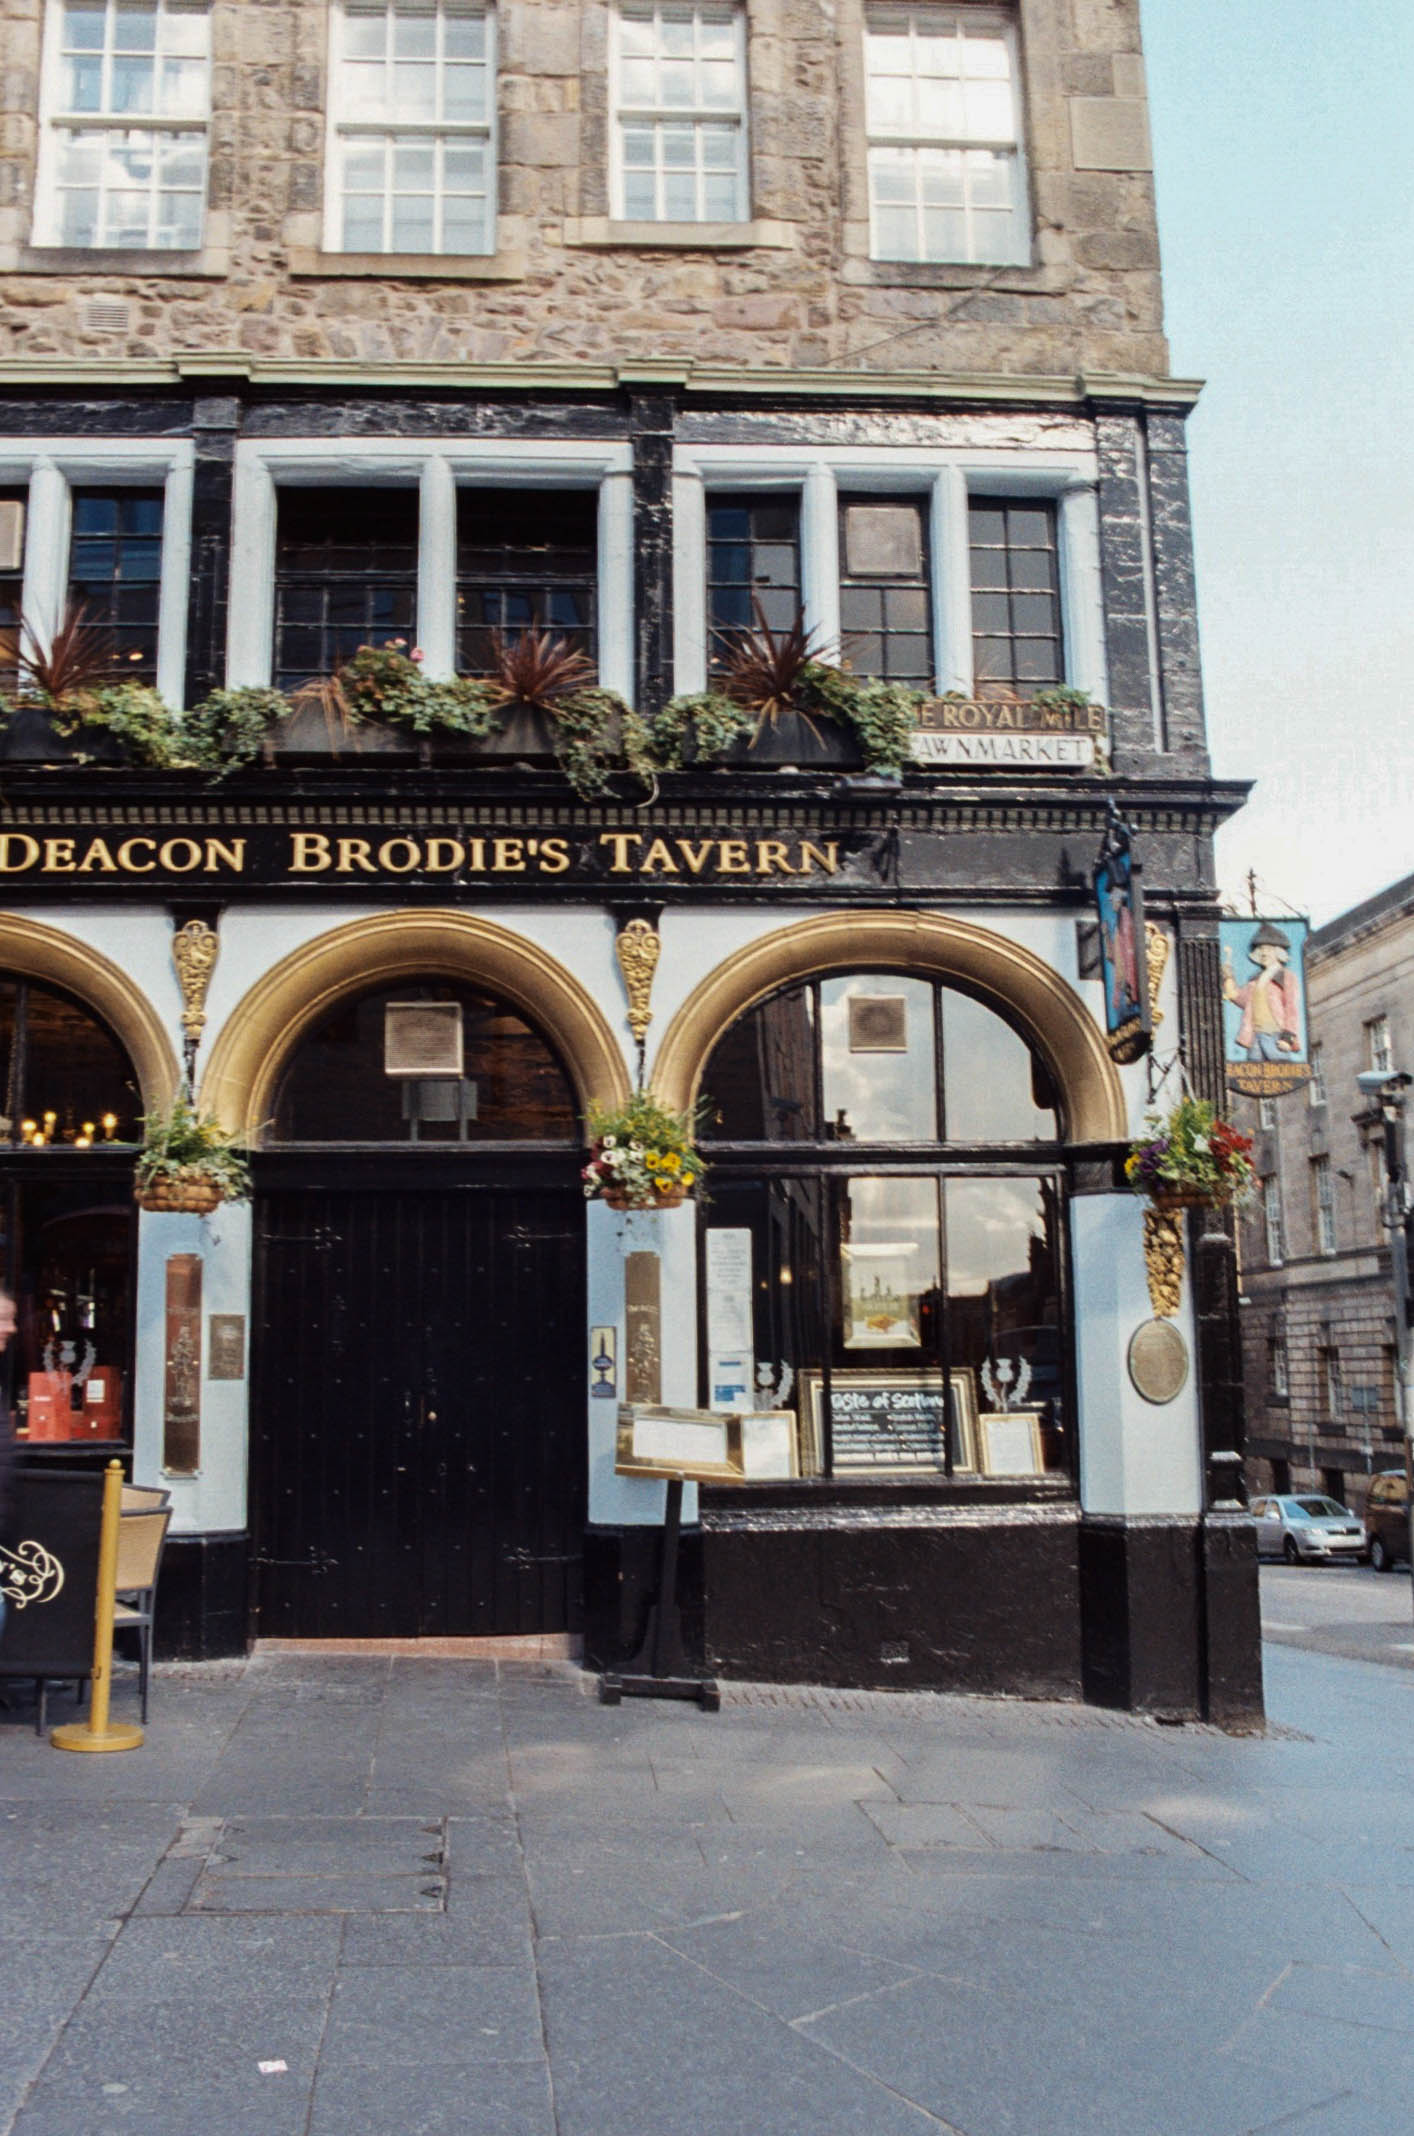 Deacon Brodie's pub, Edinburgh